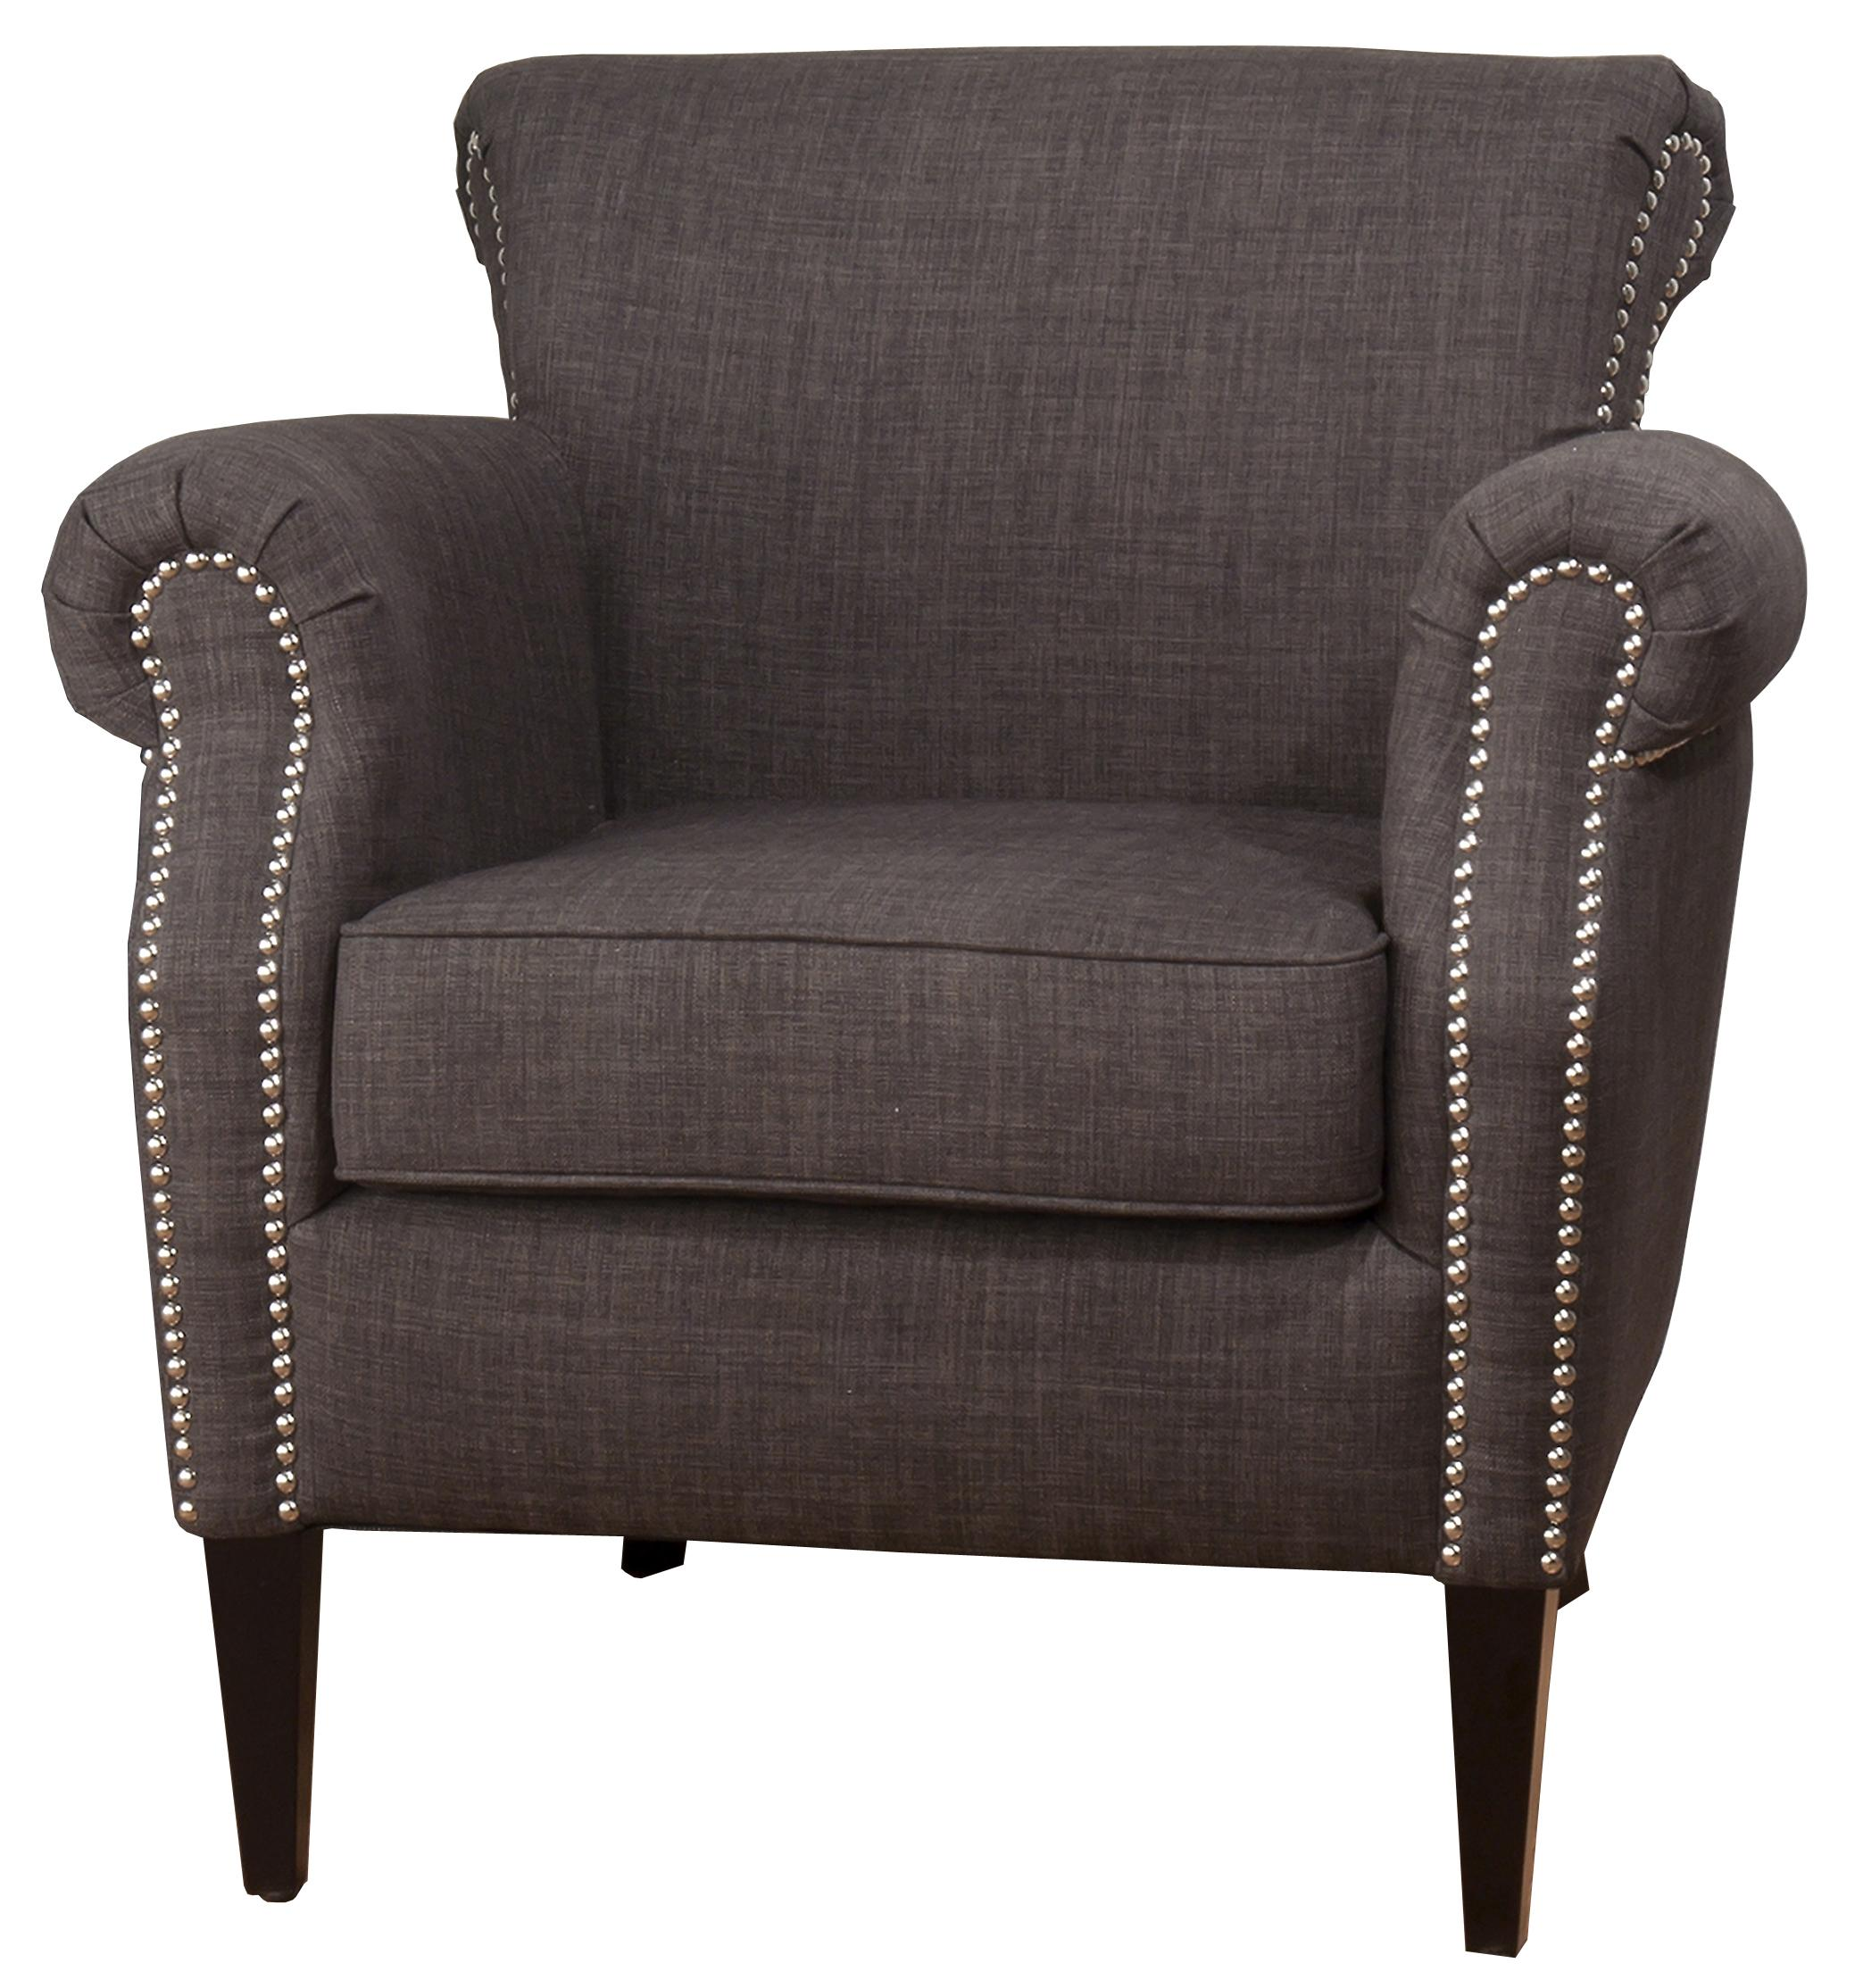 Jofran Upholstered Accent Chairs Emma Club Chair - Item Number: Emma Charcoal